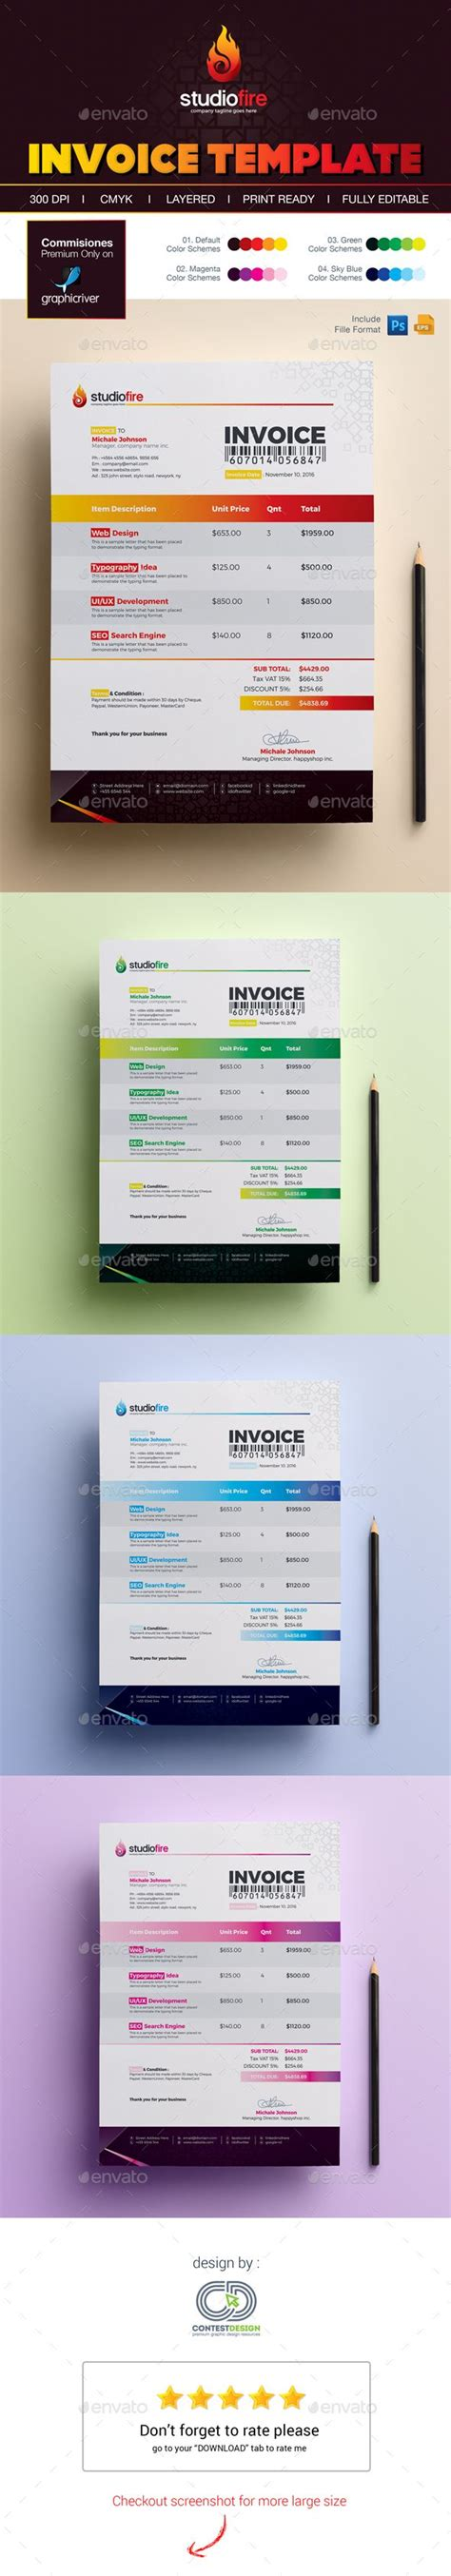 illustrator invoice template 1000 ideas about invoice template on